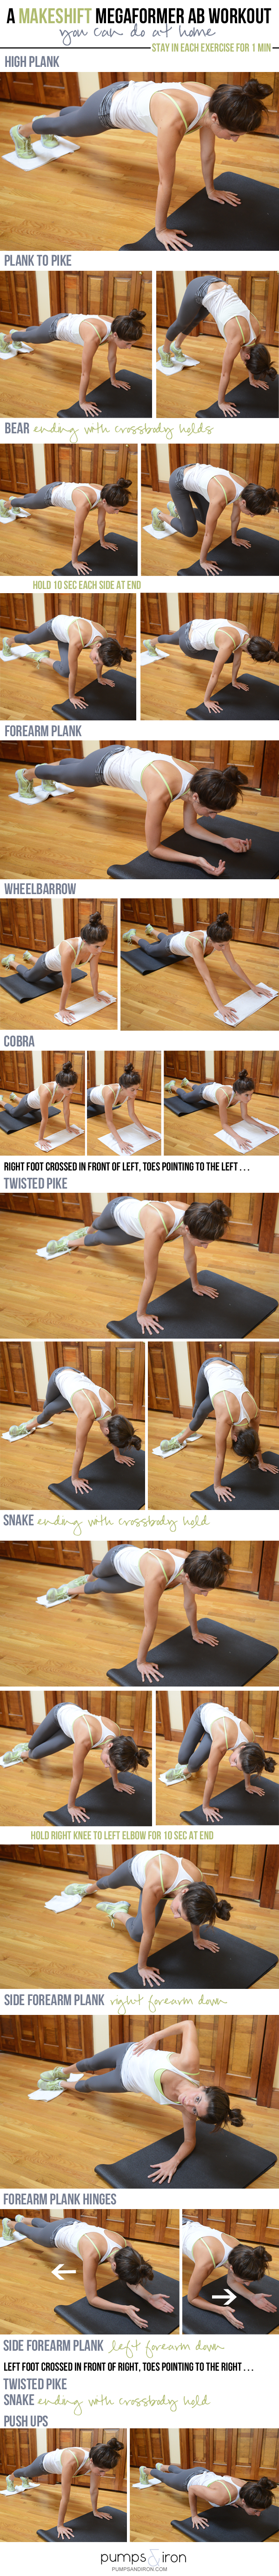 A Makeshift Megaformer Ab Workout You Can Do at Home -- all you need is a dish towel (or sliders). Under 15 minutes long and your abs will be on fire!